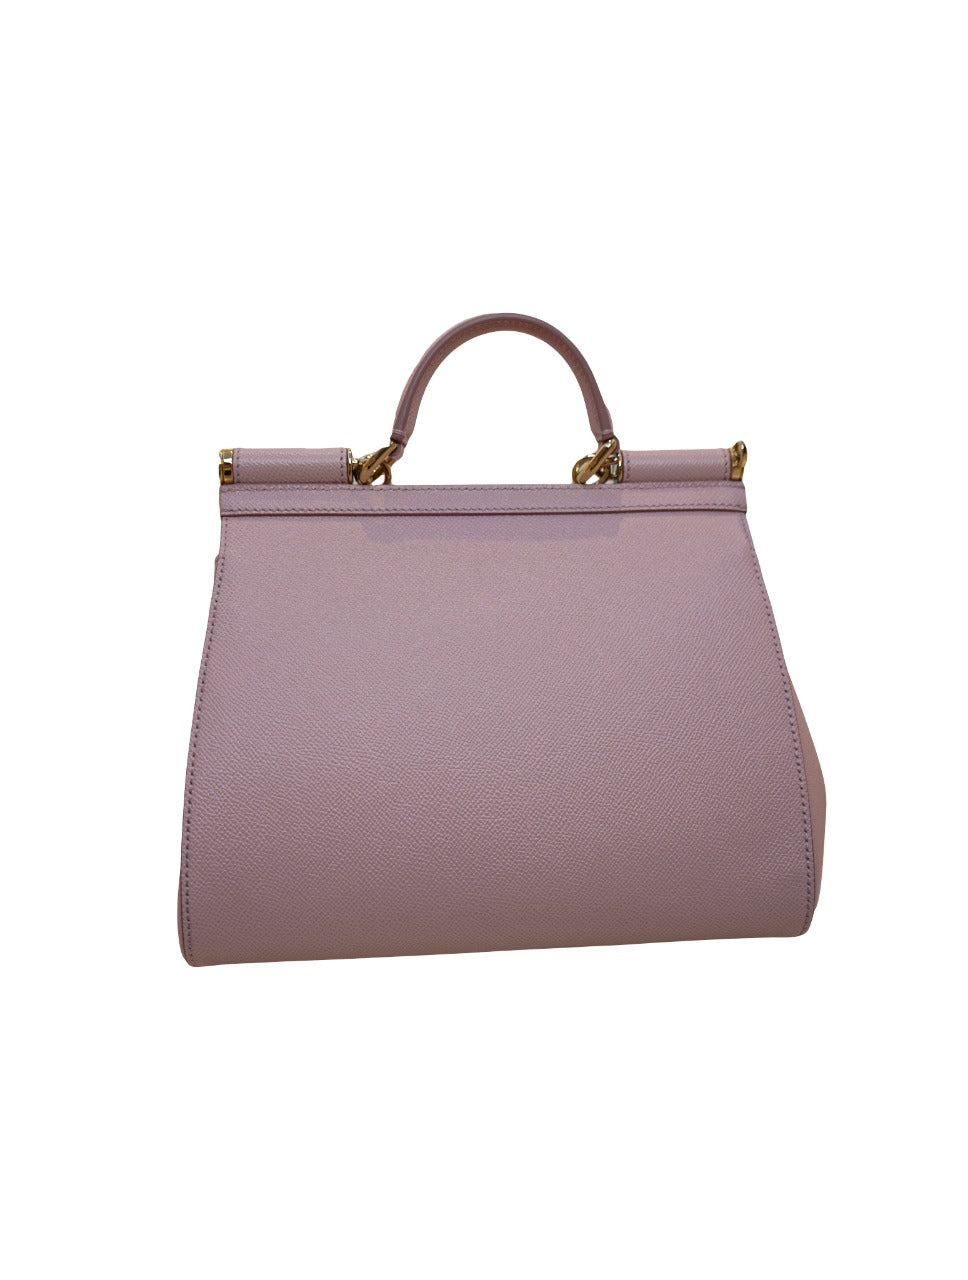 LIGHT PINK DAUPHINE LEATHER SICILY BAG